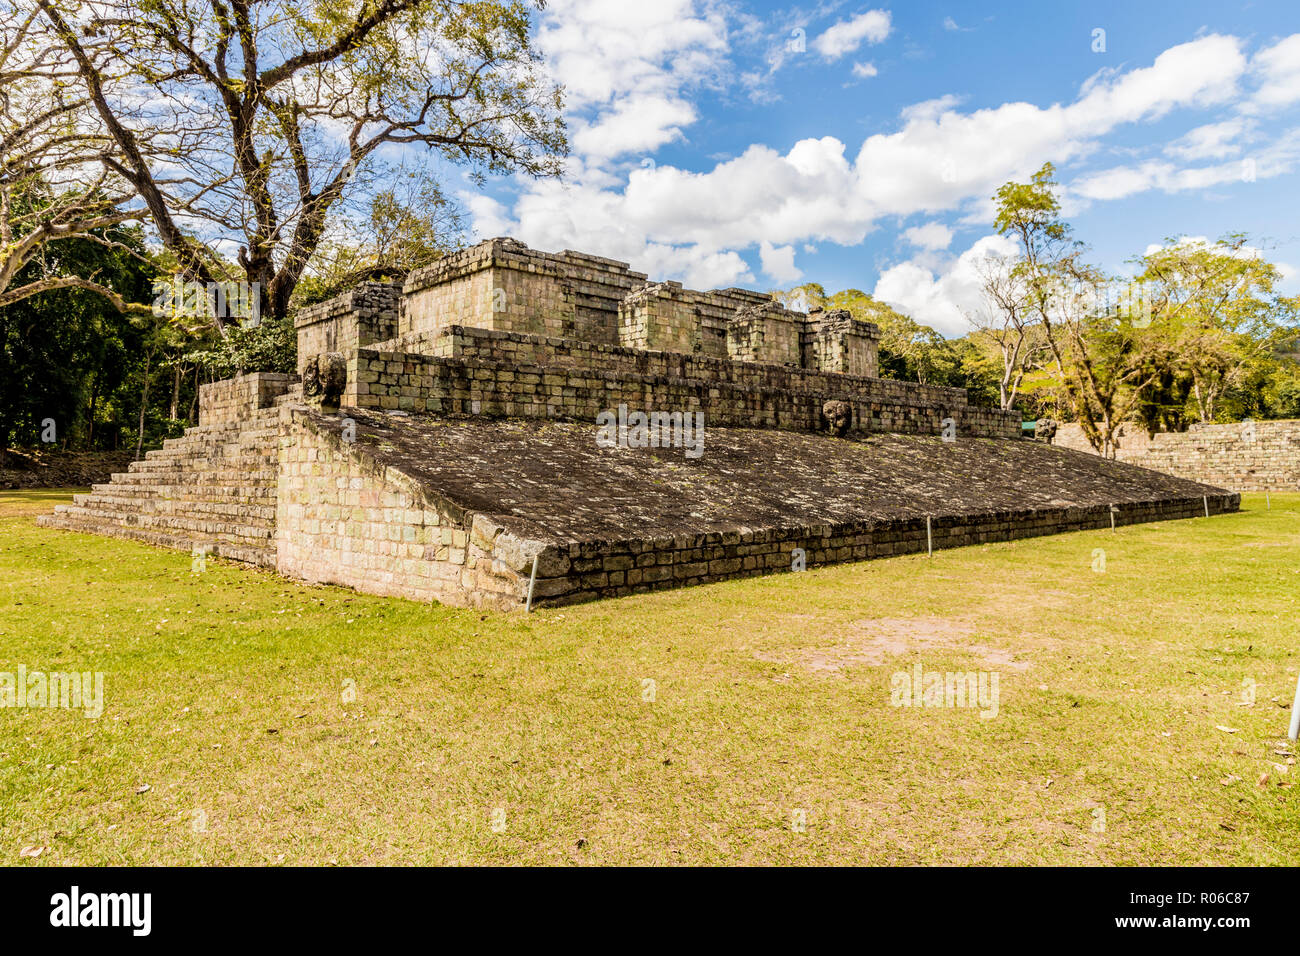 Ball Court, in the archaeological site of the Maya civilization, at Copan Ruins UNESCO World Heritage Site, Copan, Honduras, Central America - Stock Image